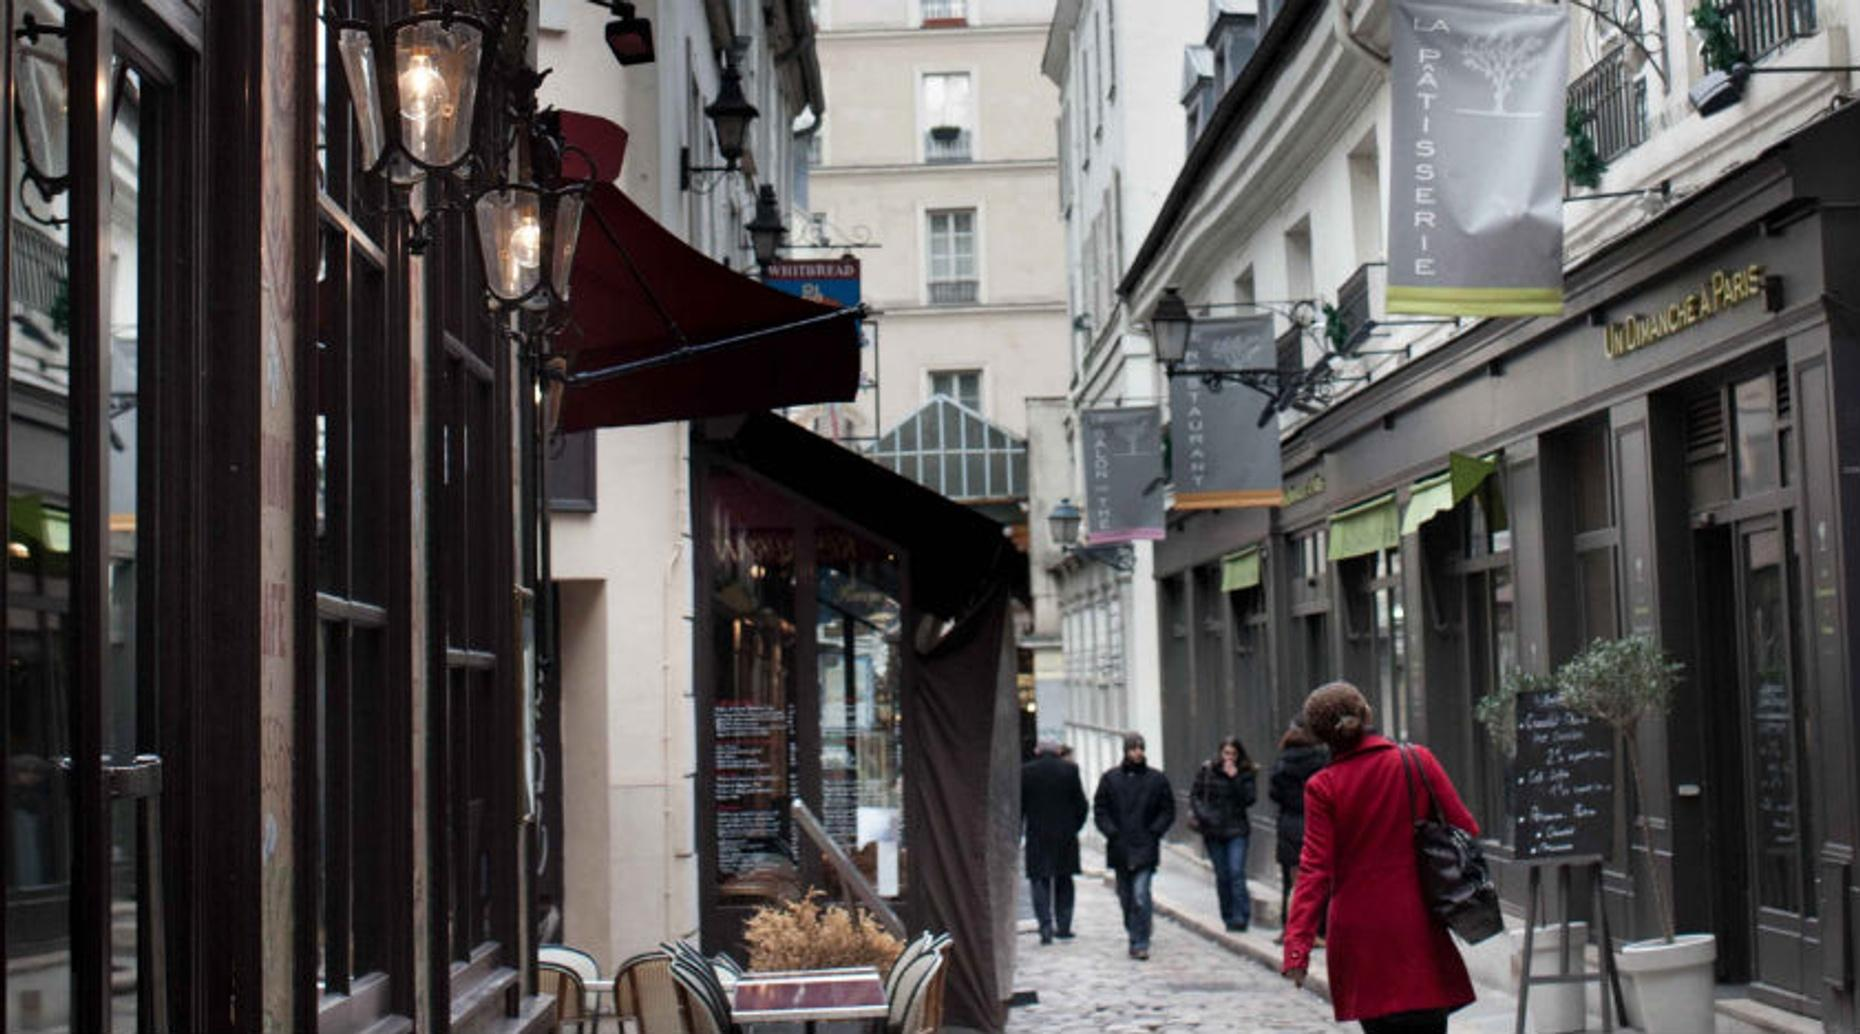 Saint Germain des Prés Walking Tour